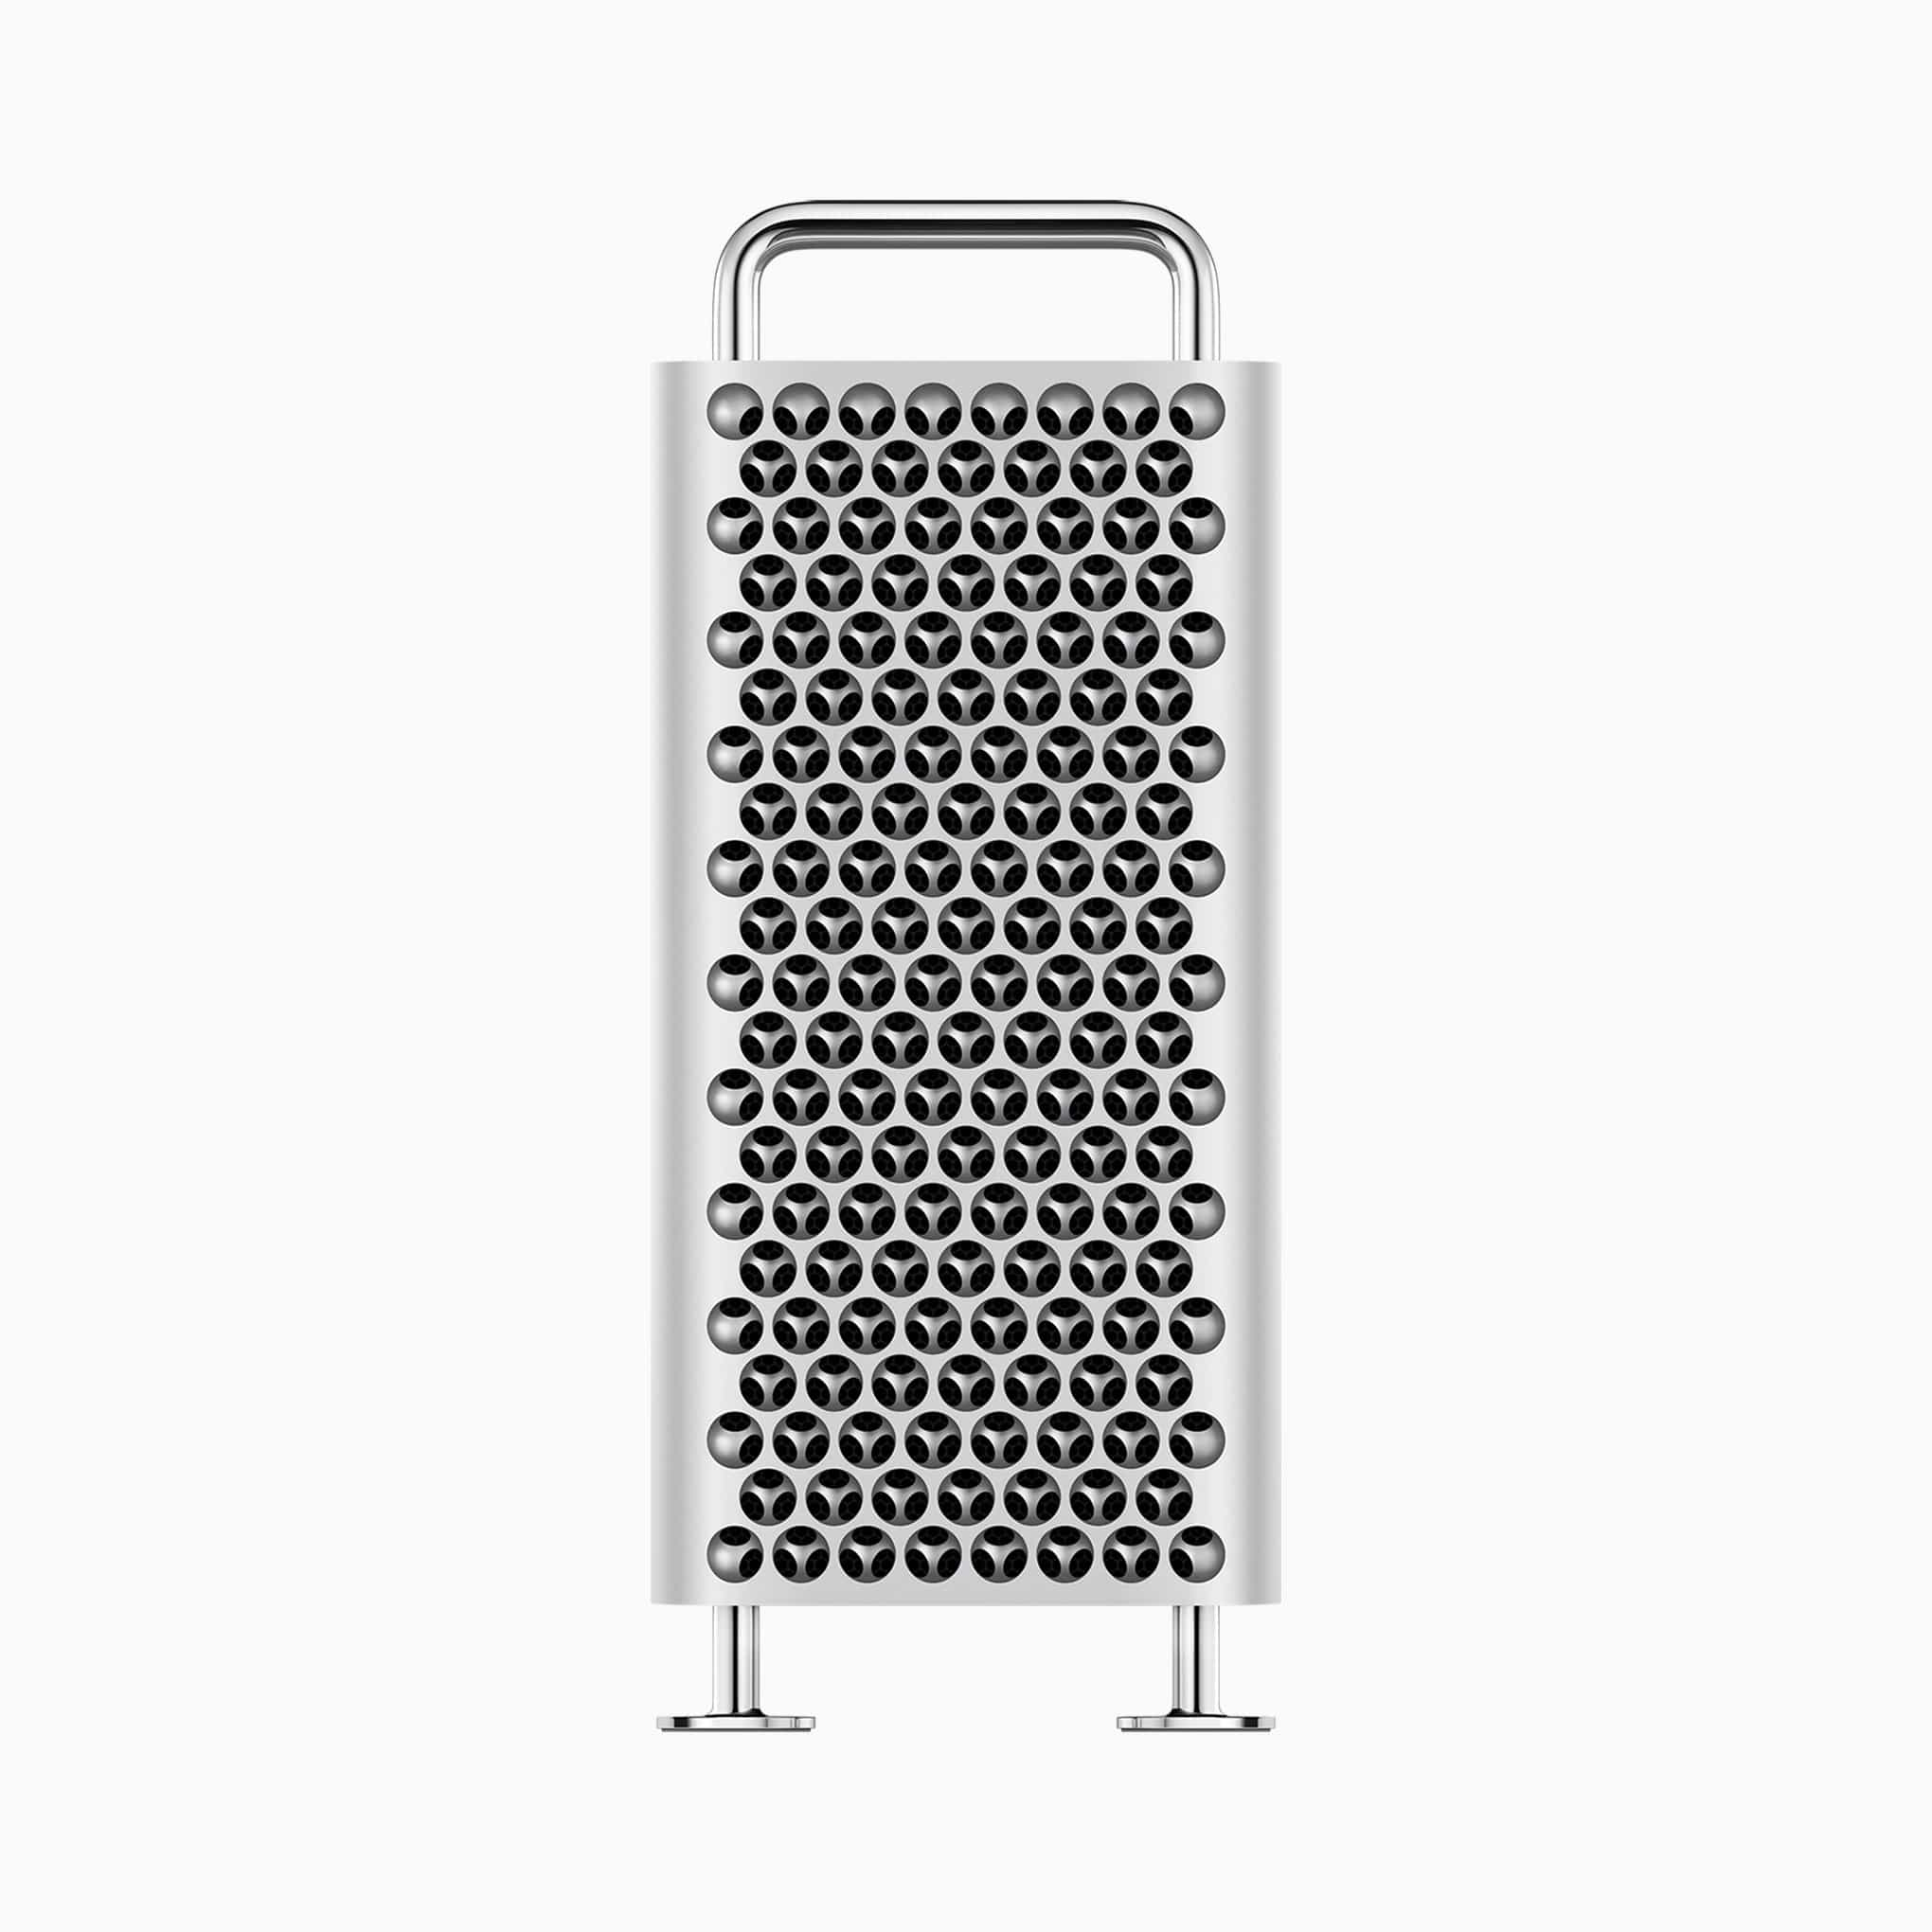 apple mac pro 2019 1